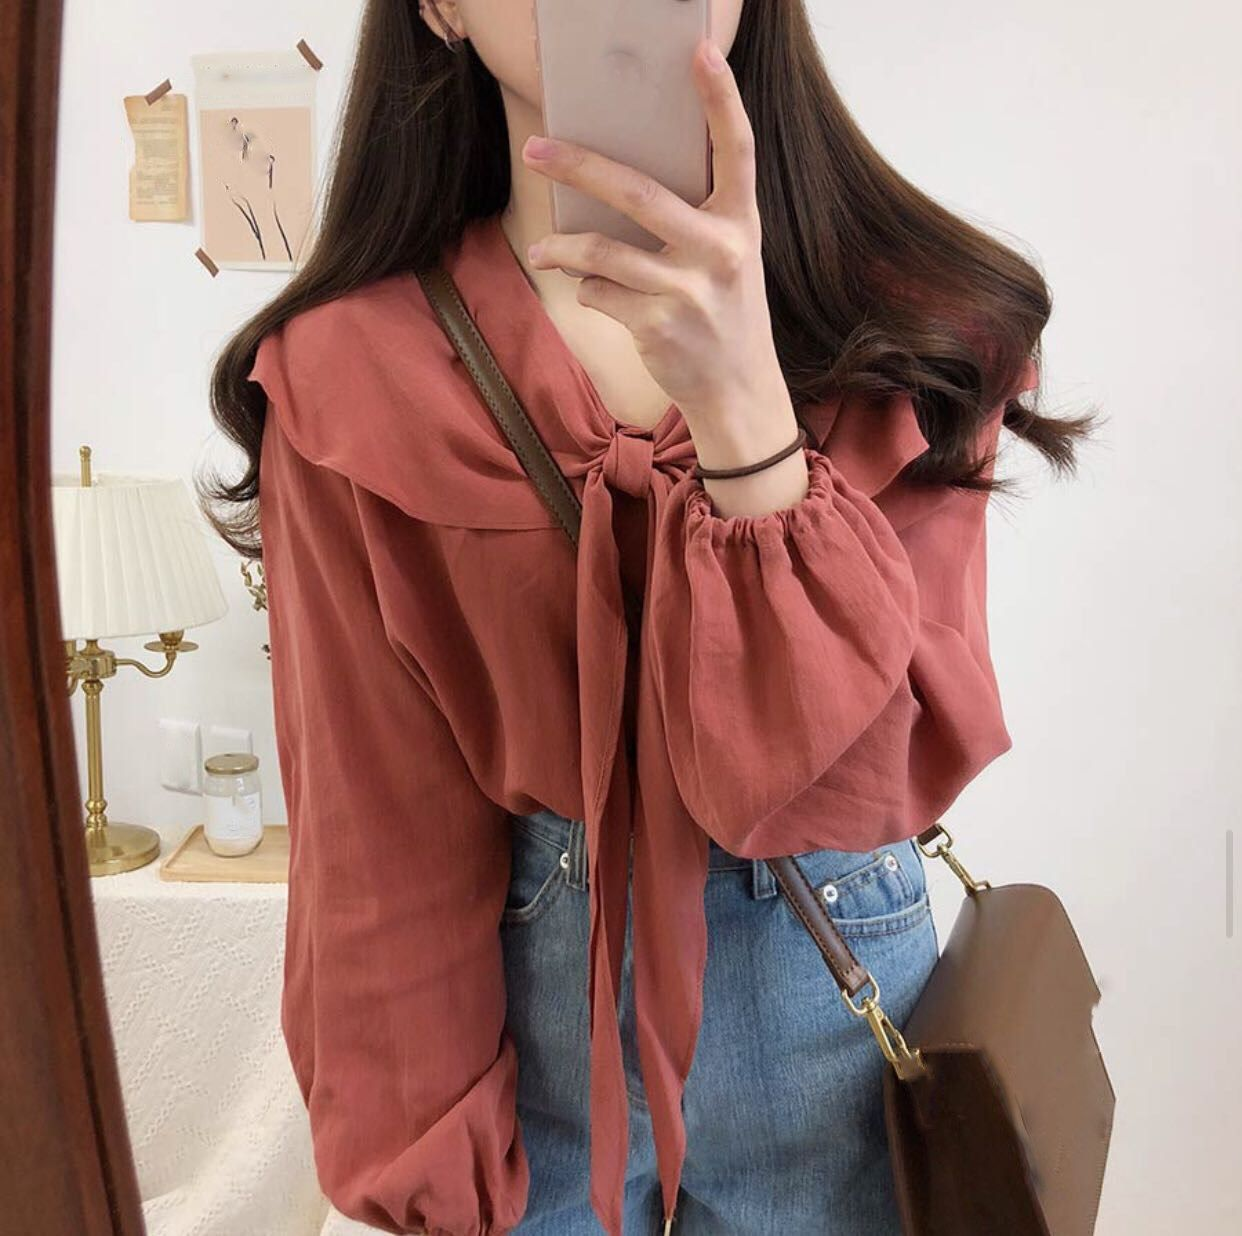 US $16.95 |2019 Korean Style Women Bow Tie Knot Tops Casual Cute Beach Shirt Vintage Sweet Party Blouse|Blouses & Shirts|   - AliExpress